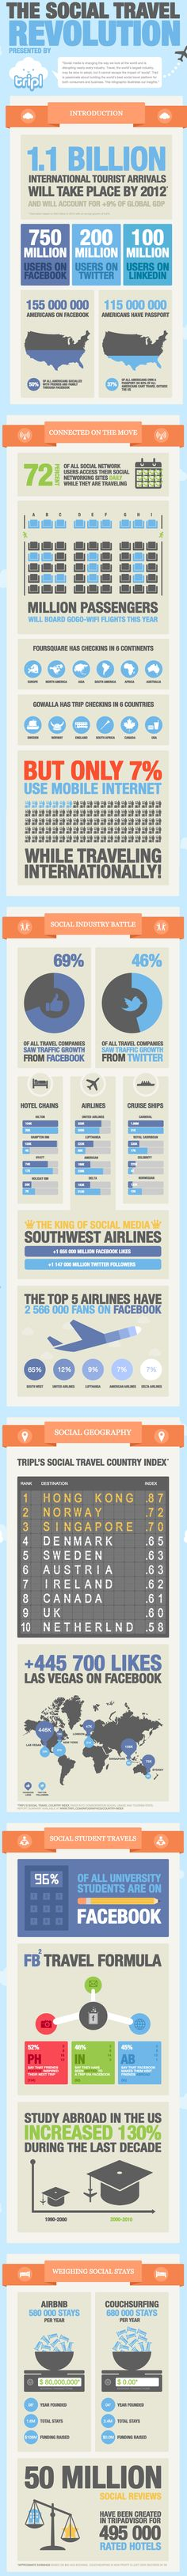 The Social Travel Revolution #tourism #infographic